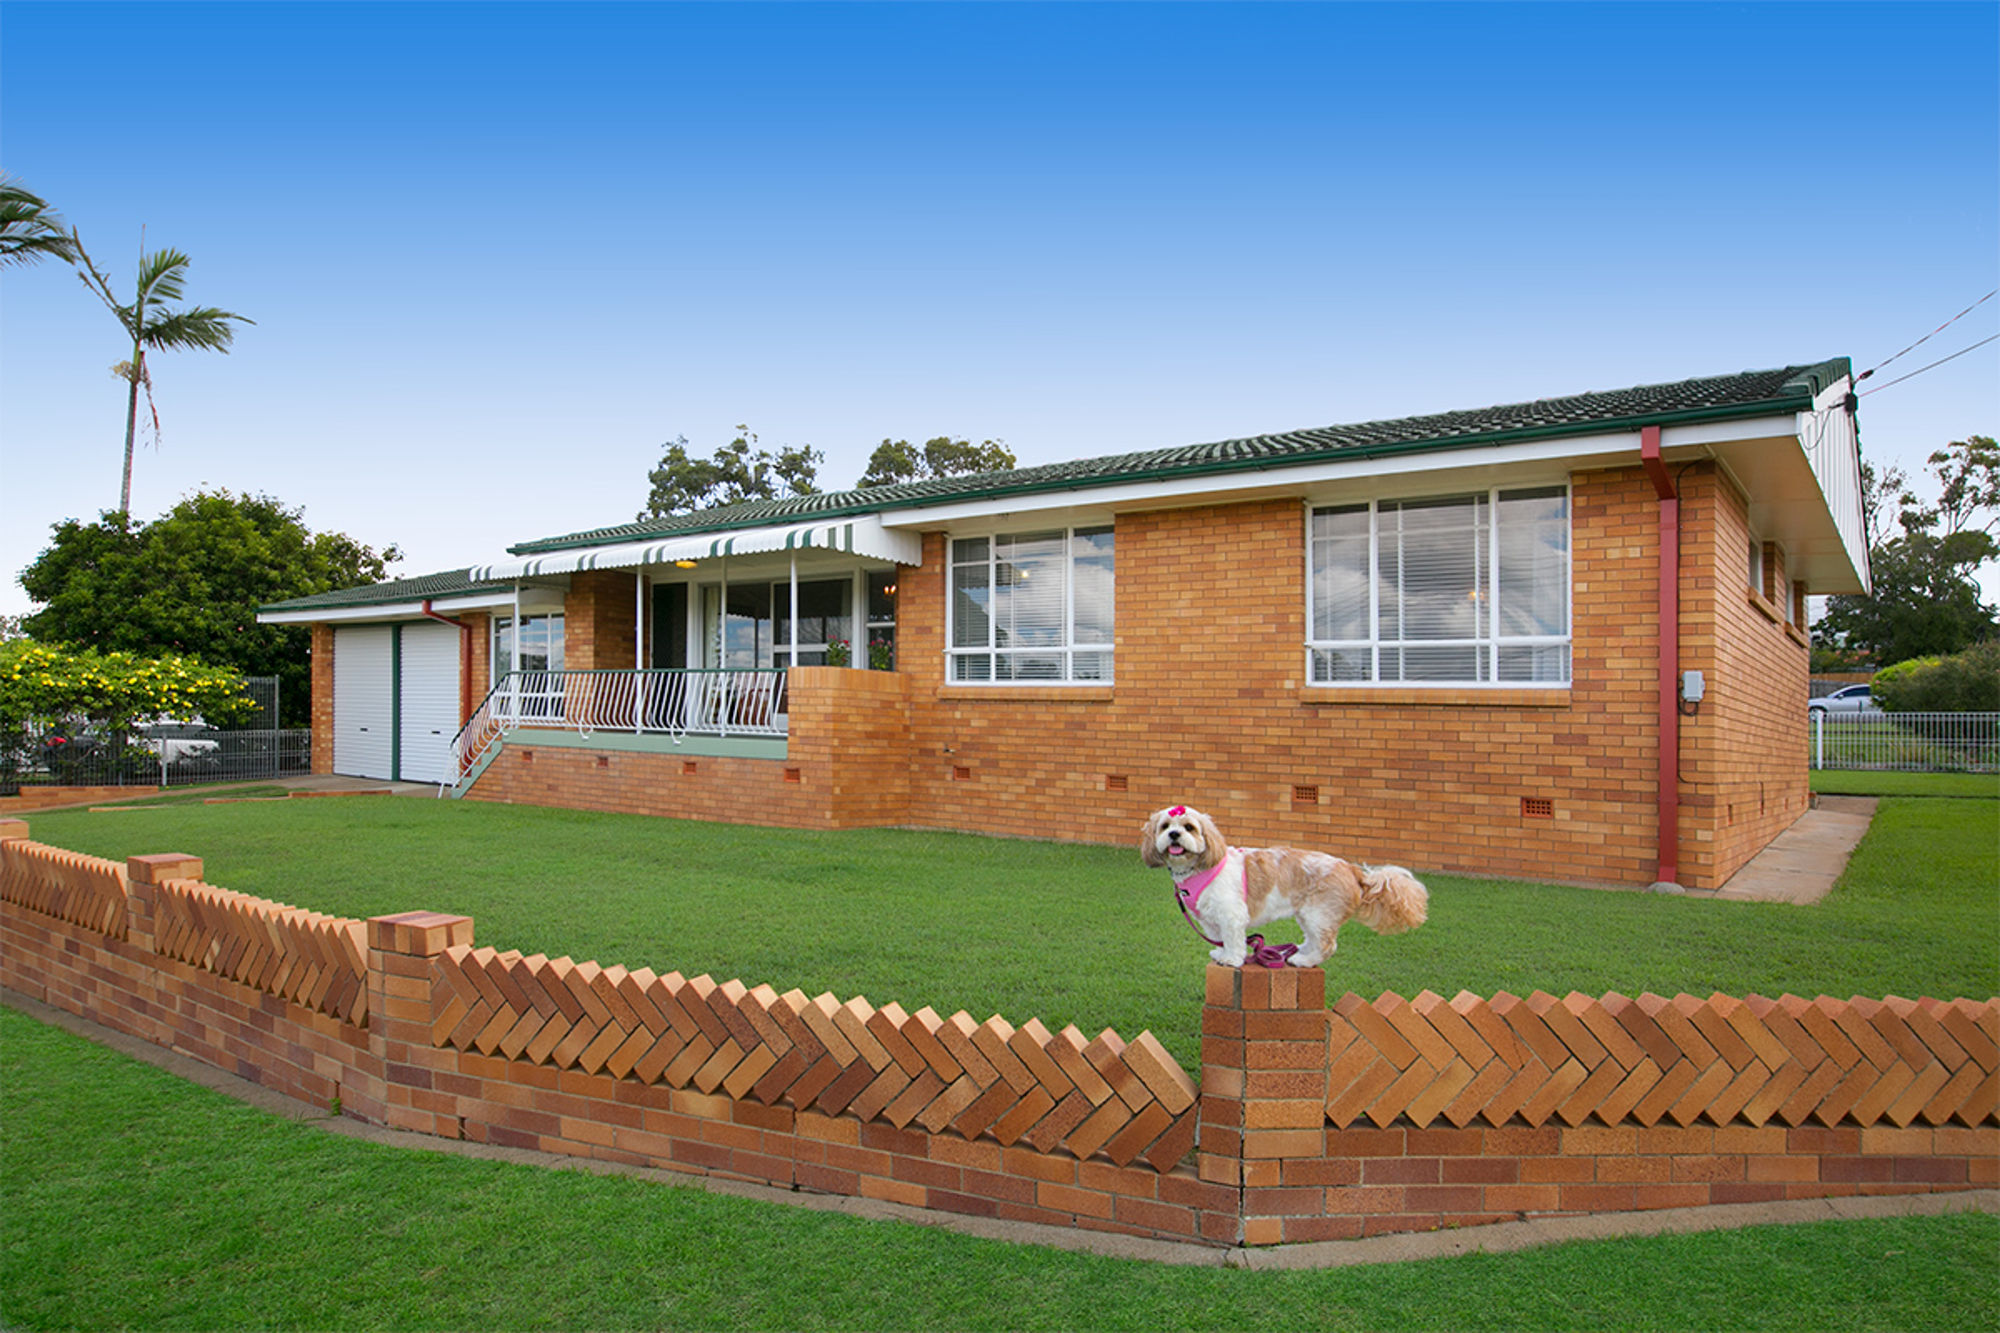 Property in Carina - Sold for $652,500